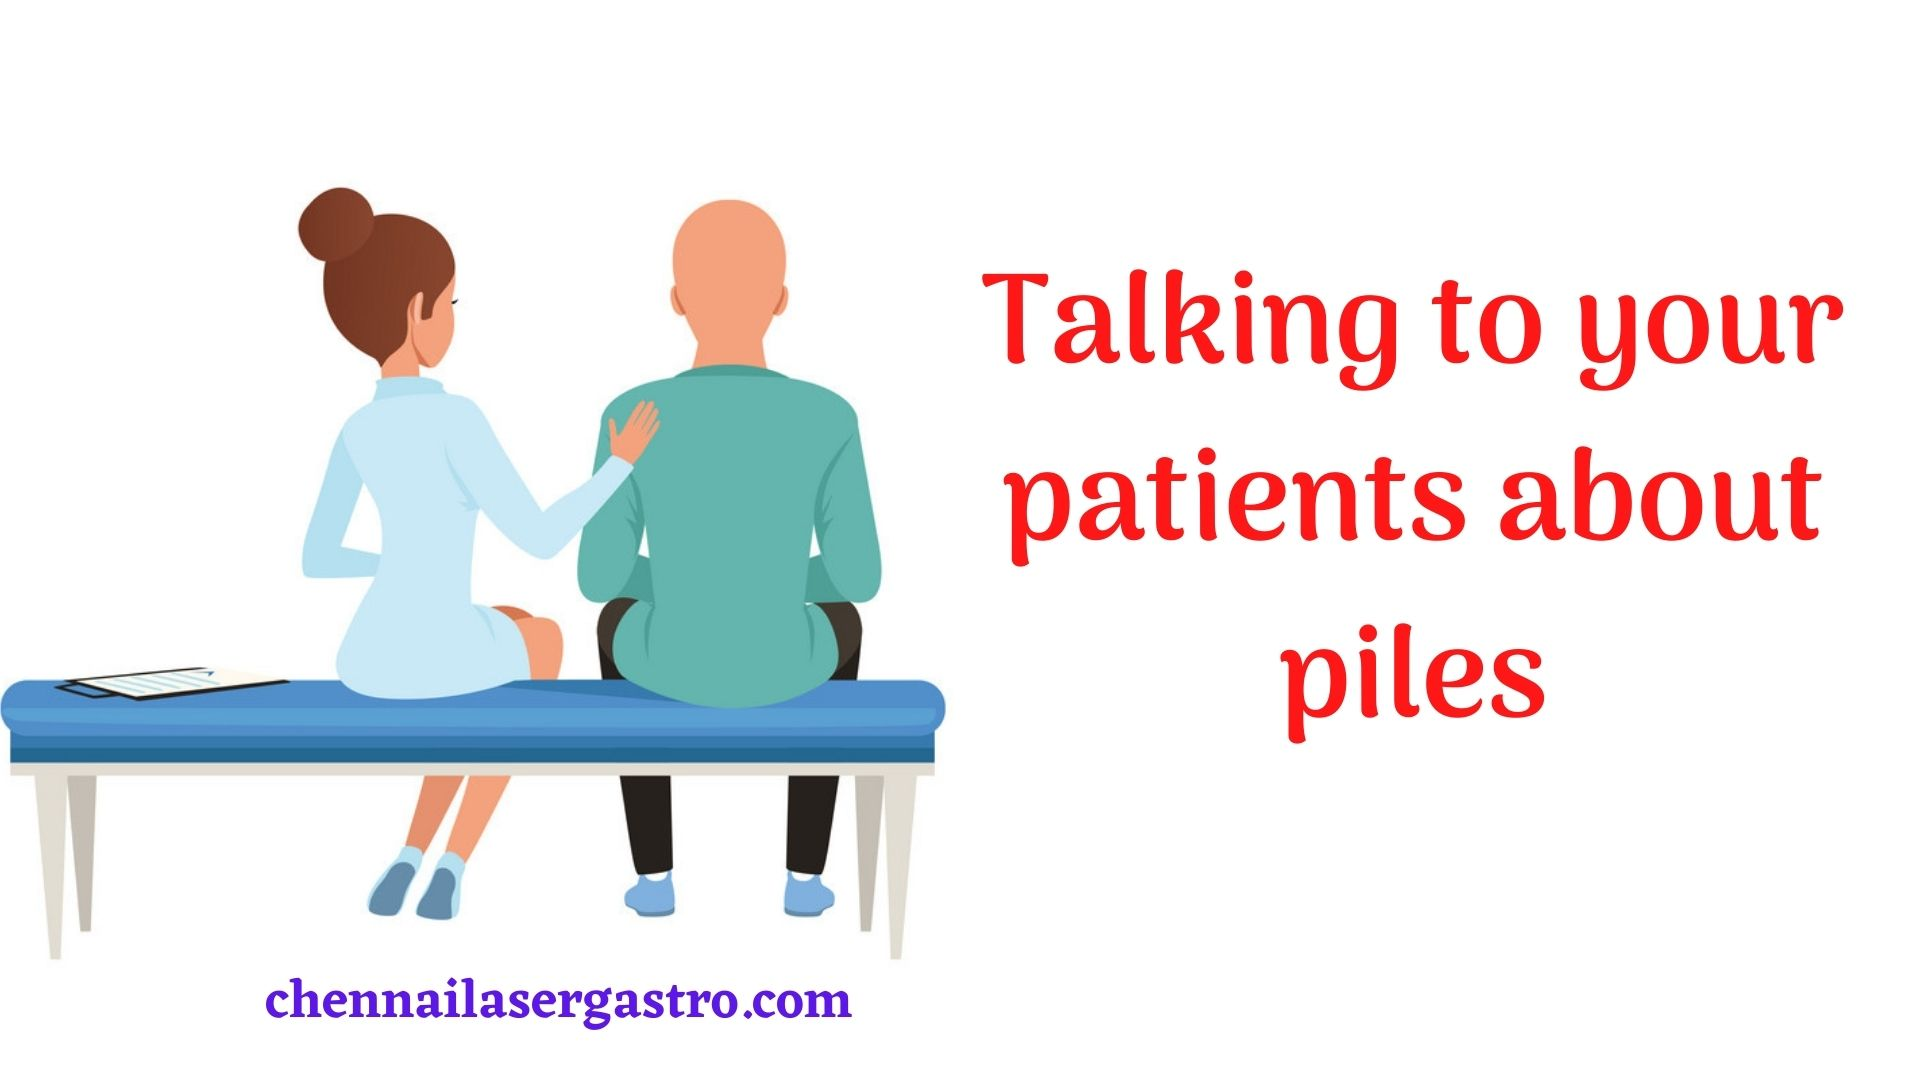 talking to your patients about piles